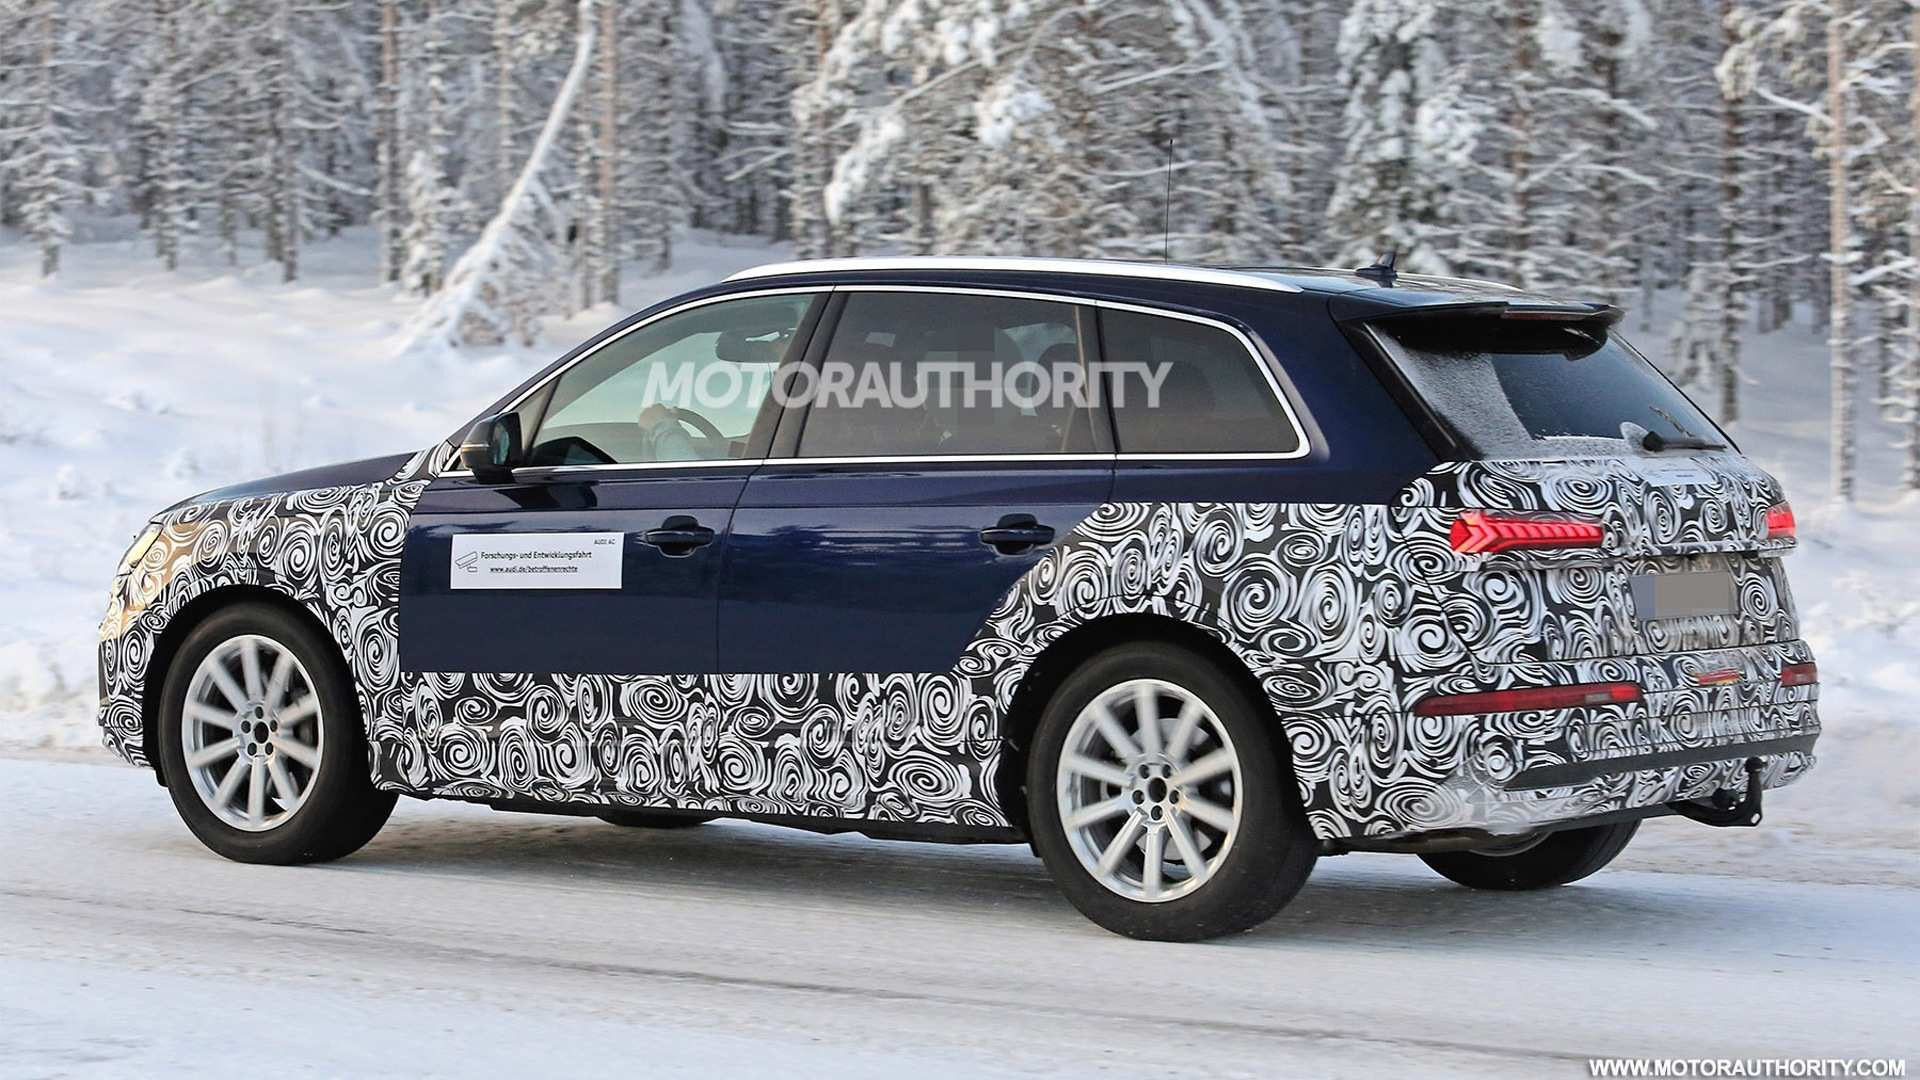 71 Great 2019 Audi Q7 Facelift Spy Shoot with 2019 Audi Q7 Facelift